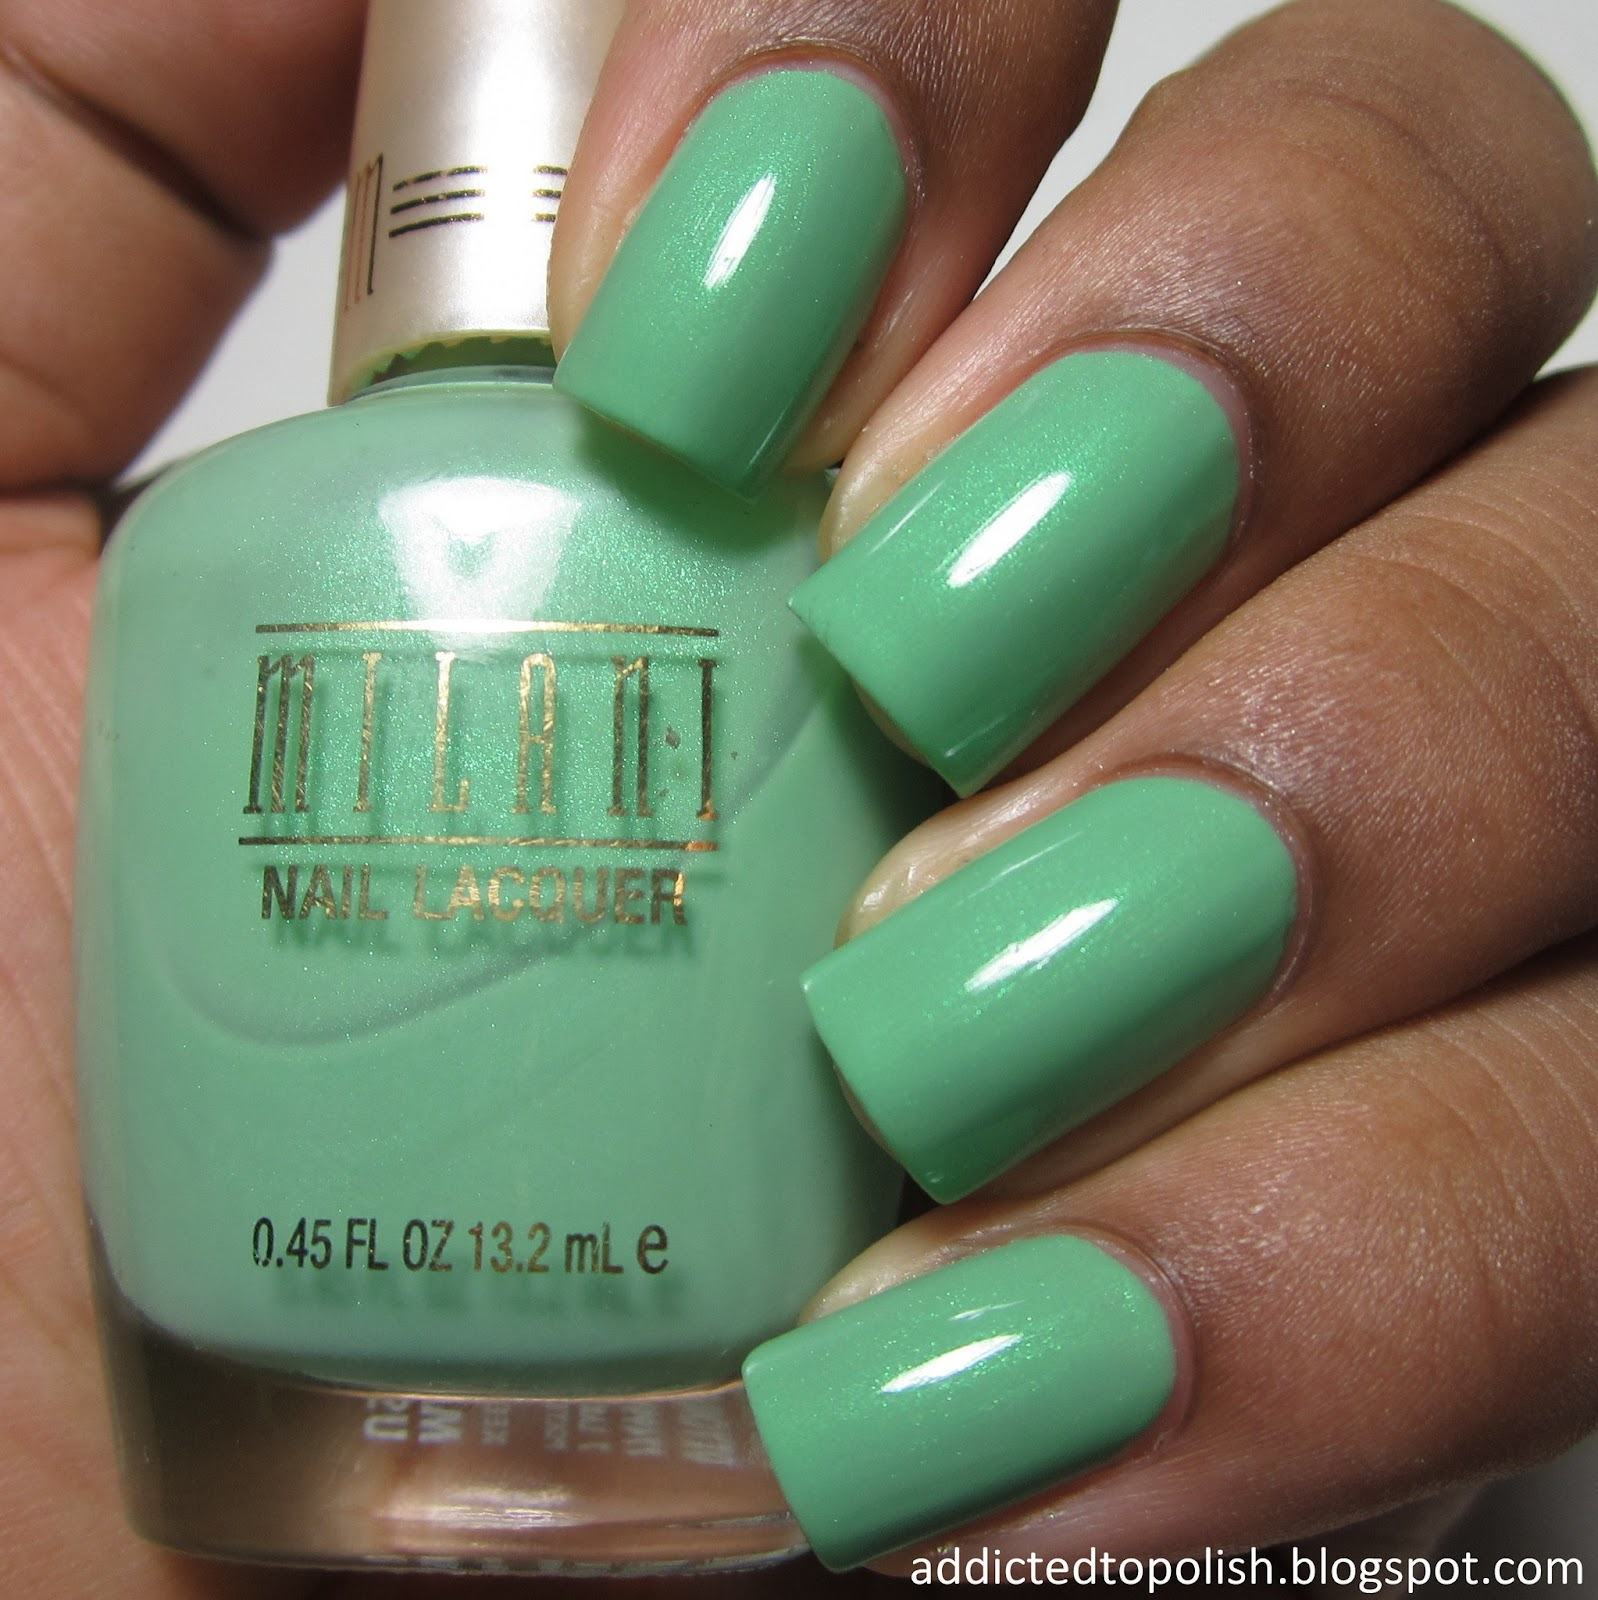 Milani Dress Maker chanel jade dupe